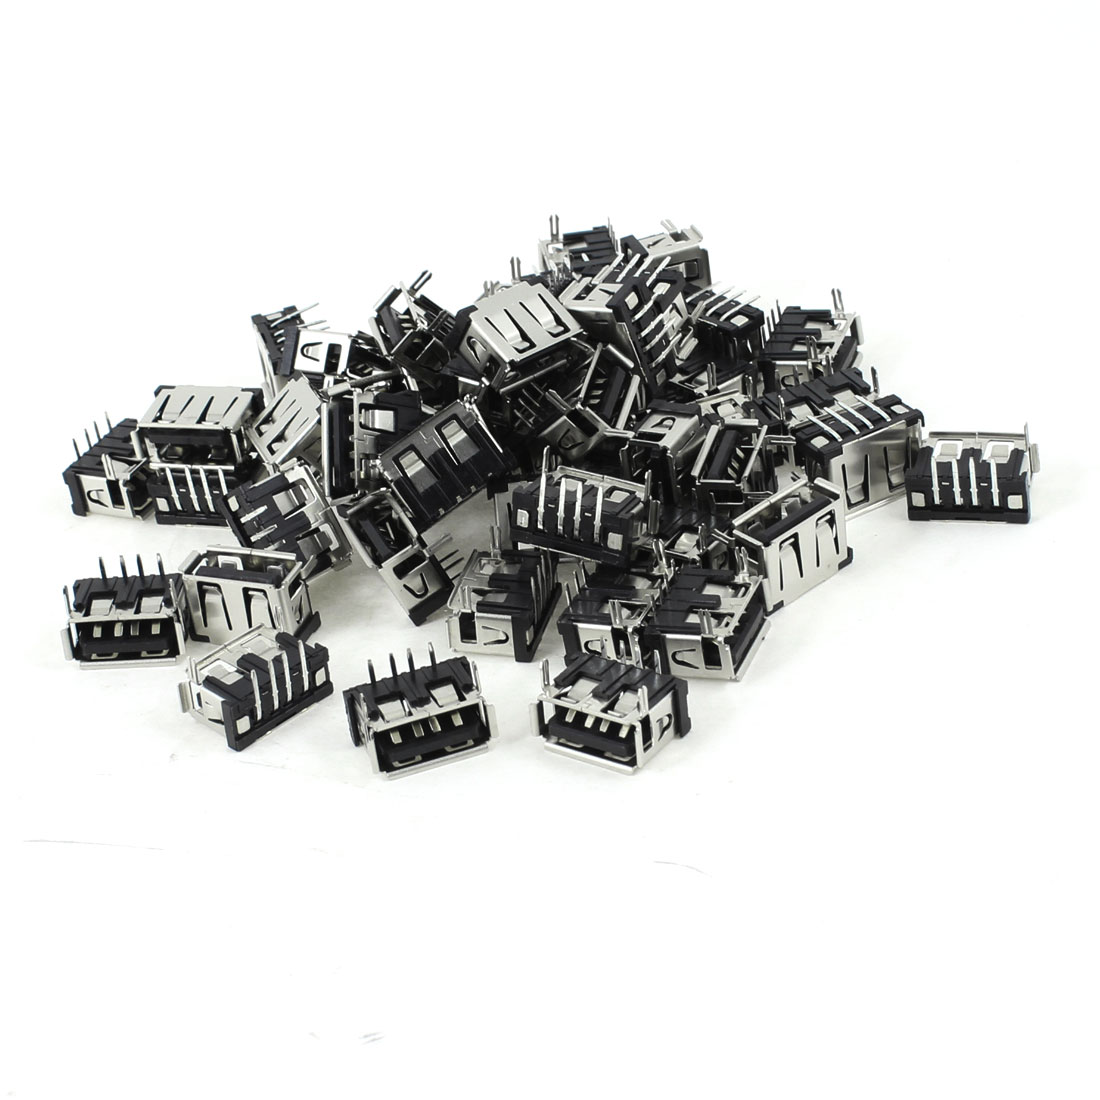 50 Pcs Single Port USB Type A 90 Degree 4-Pin DIP Female Jack Socket